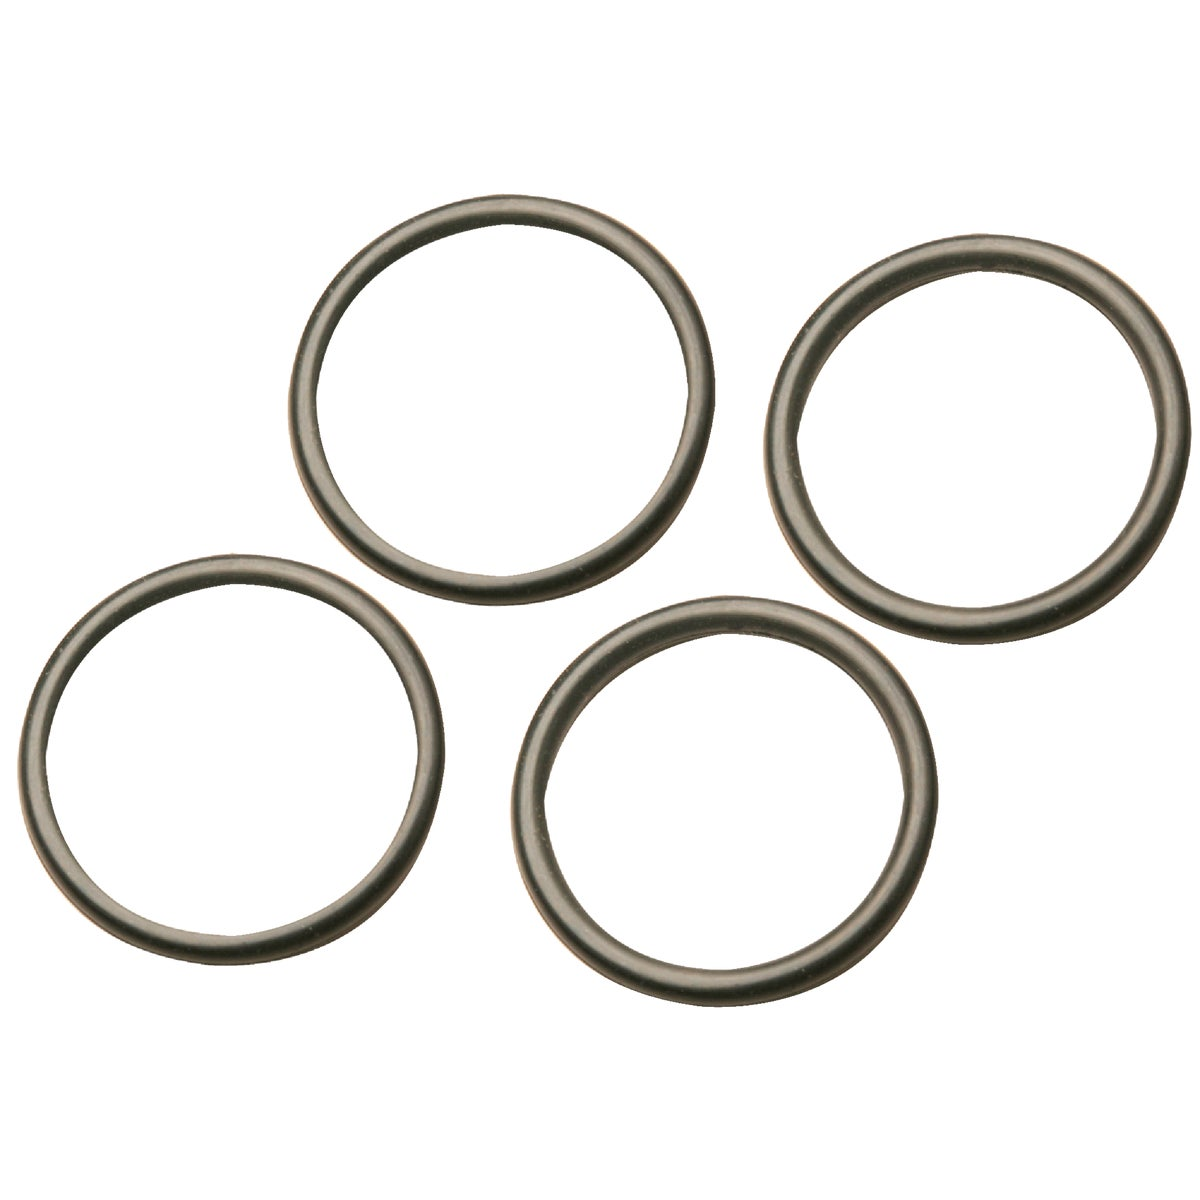 DELTA O-RINGS - 405337 by Plumb Pak/keeney Mfg